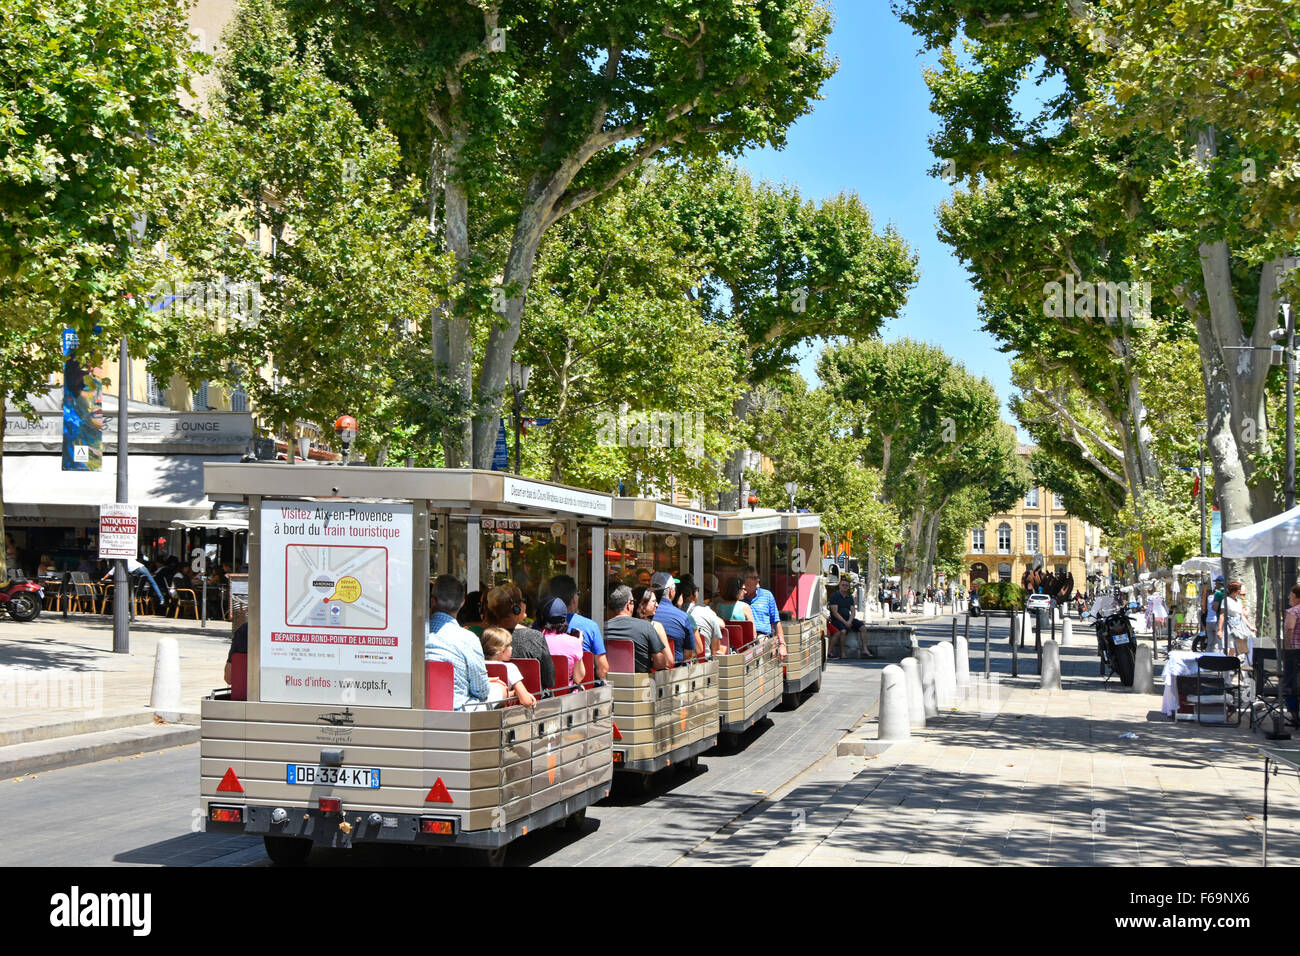 aix en provence provence france south of france land train stock photo royalty free image. Black Bedroom Furniture Sets. Home Design Ideas